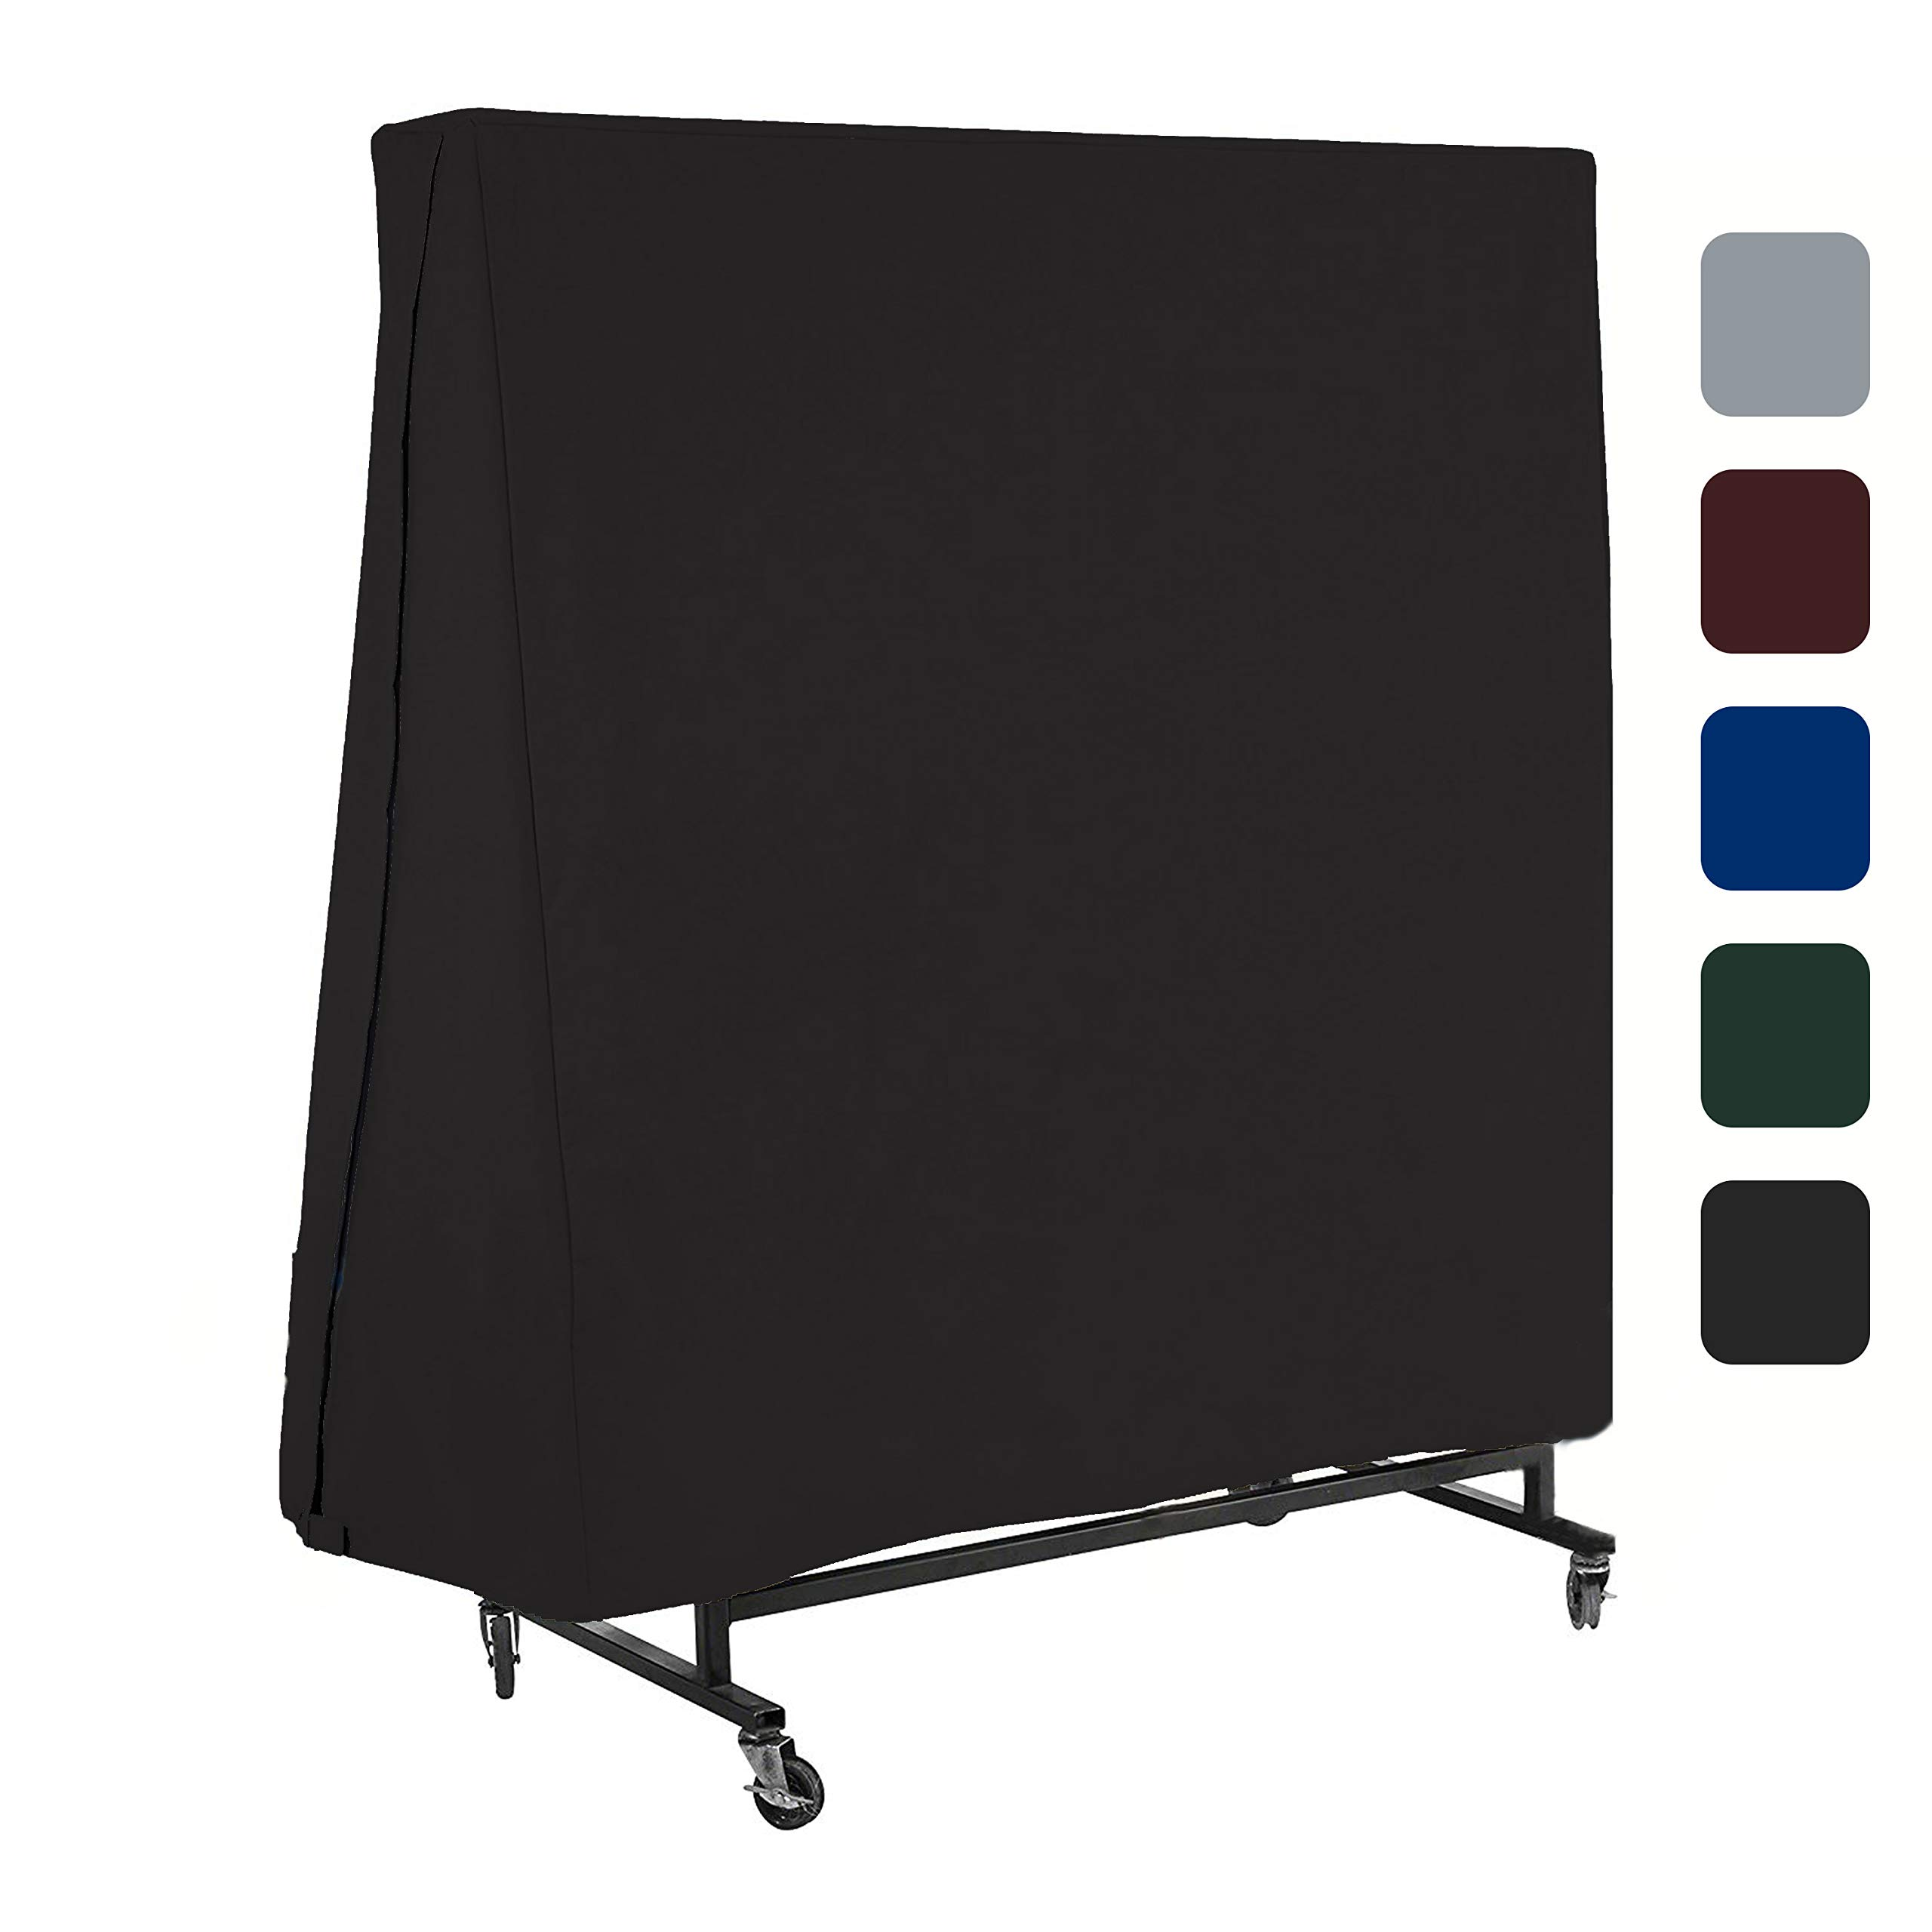 COVERS & ALL Ping Pong Table Cover for Indoor/Outdoor - Waterproof & UV Resistant Table Tennis Cover 12 Oz PVC Heavy Duty Fabric with Air Pockets & Drawstring for Snug Fit (Black)